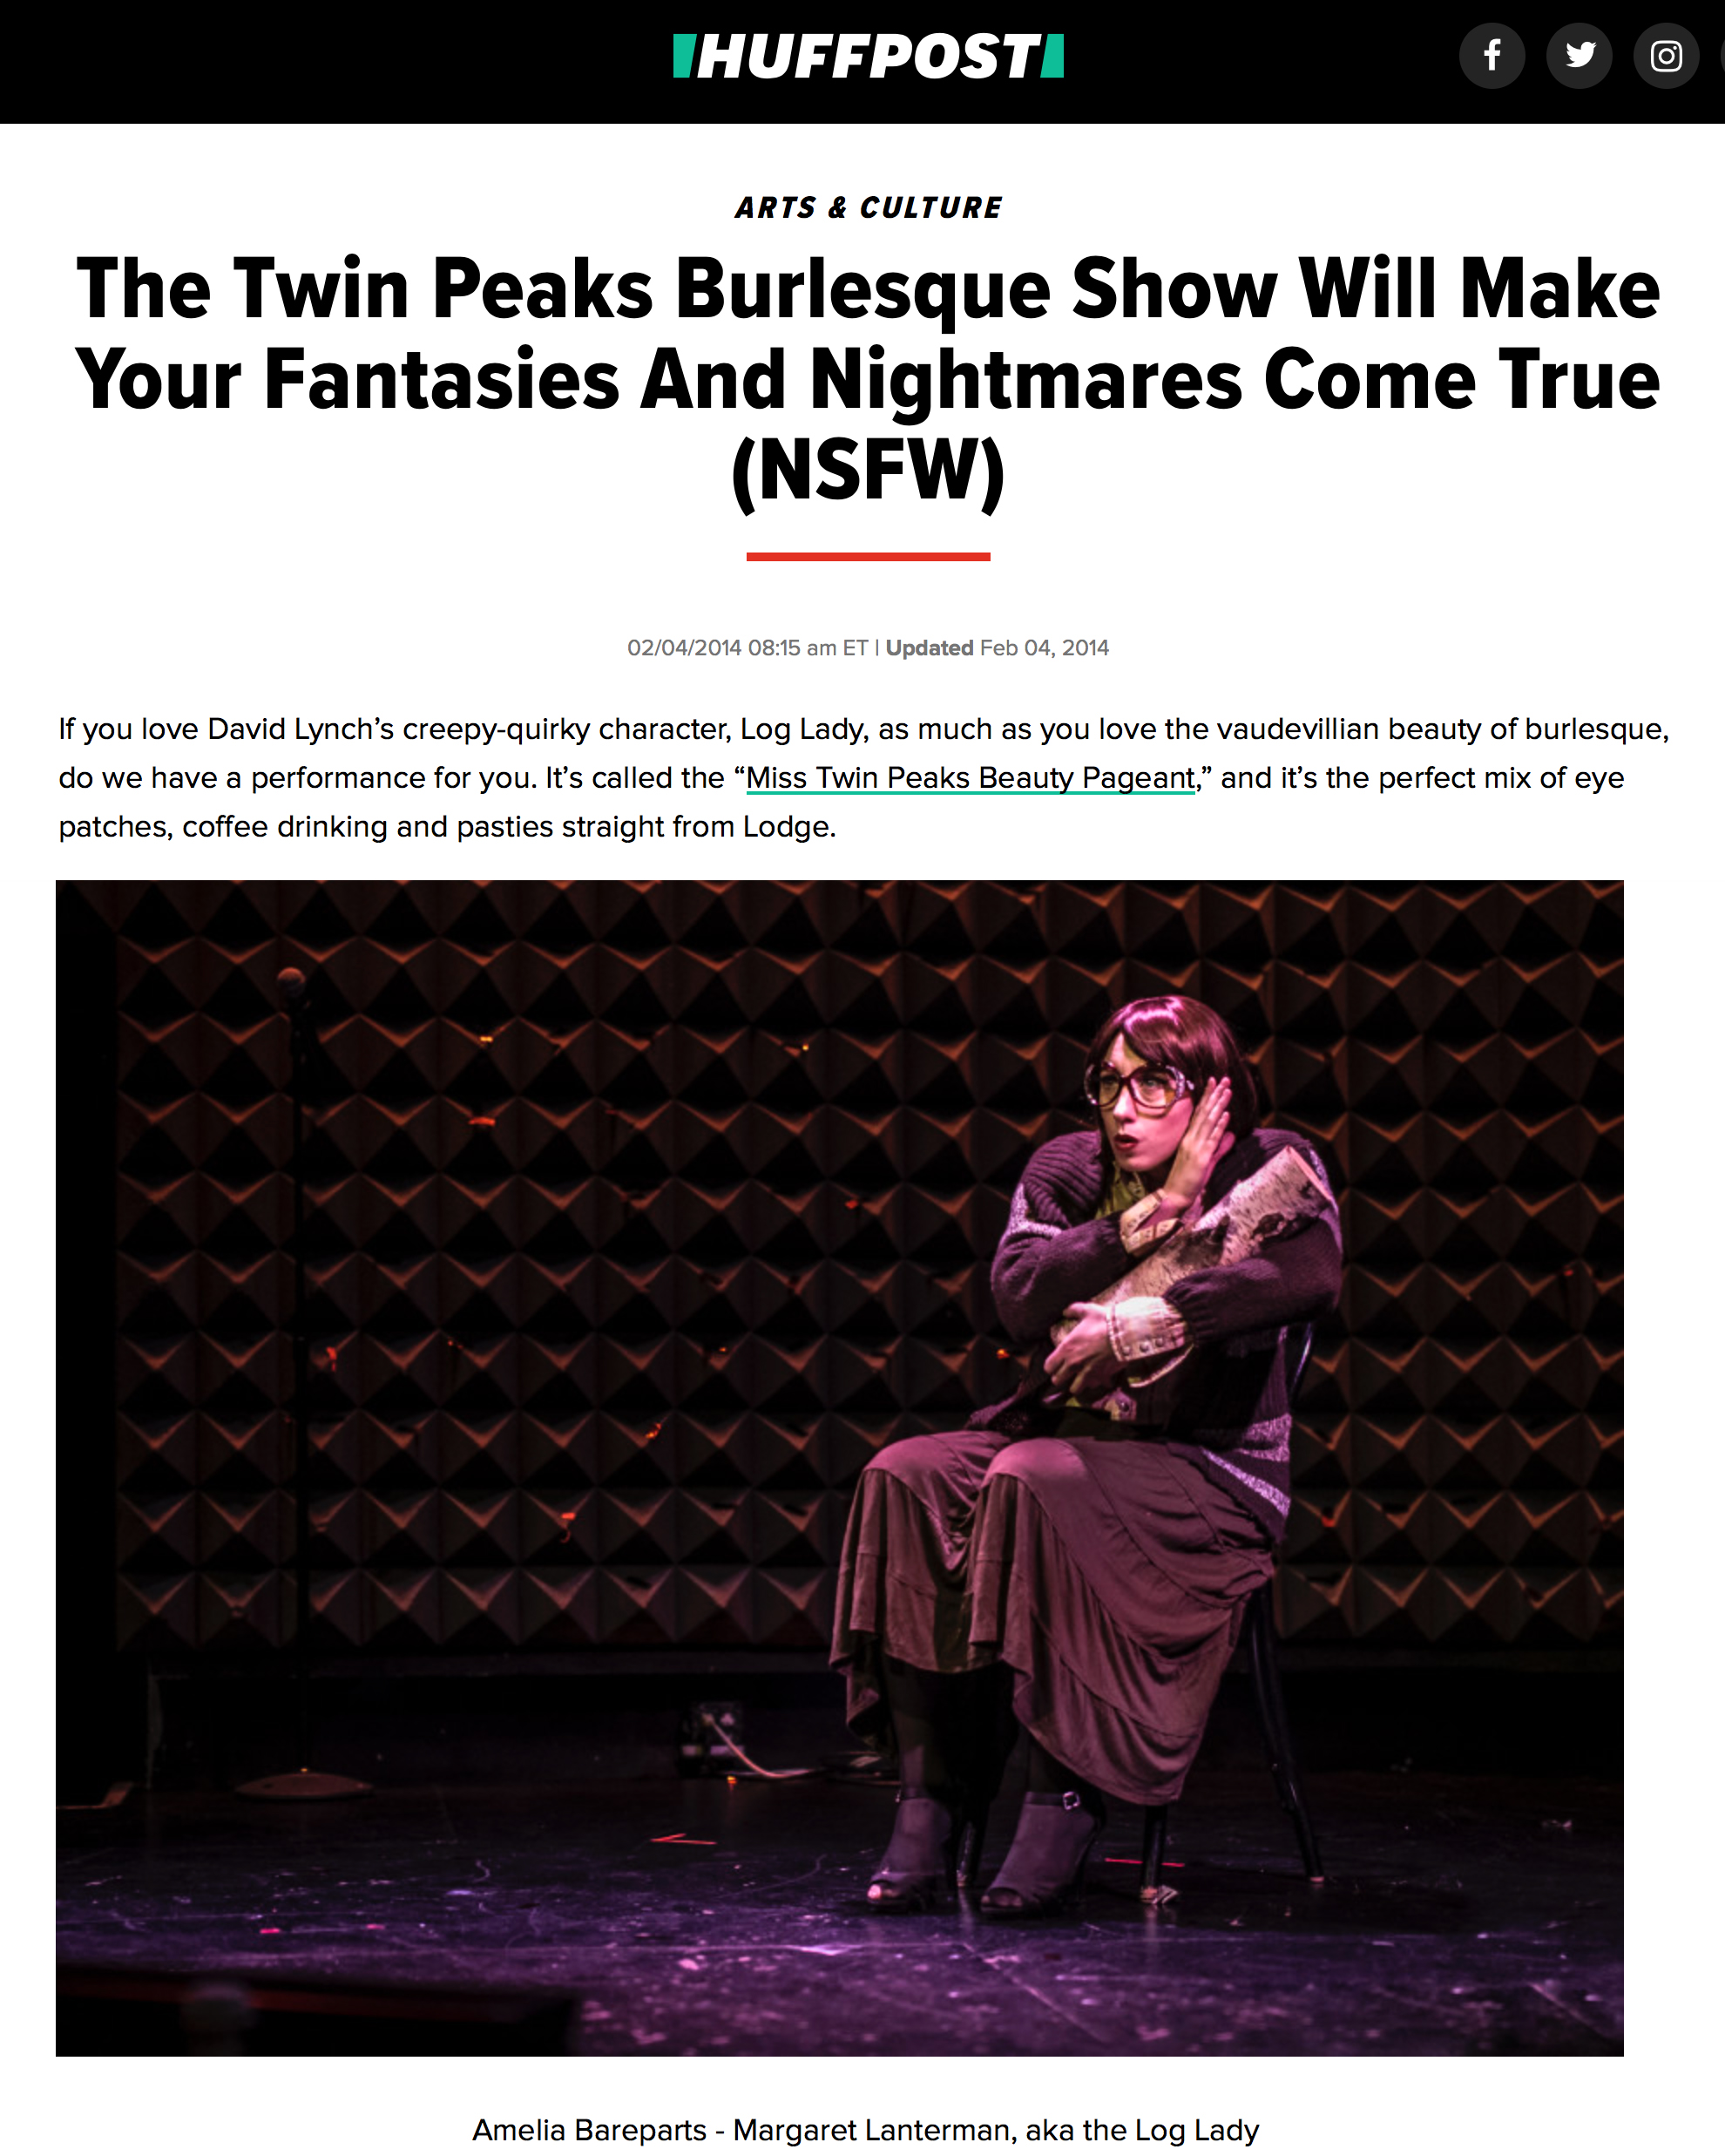 """""""The Twin Peaks Burlesque Show Will Make Your Fantasies And Nightmares Come True"""" -  Huffington Post"""